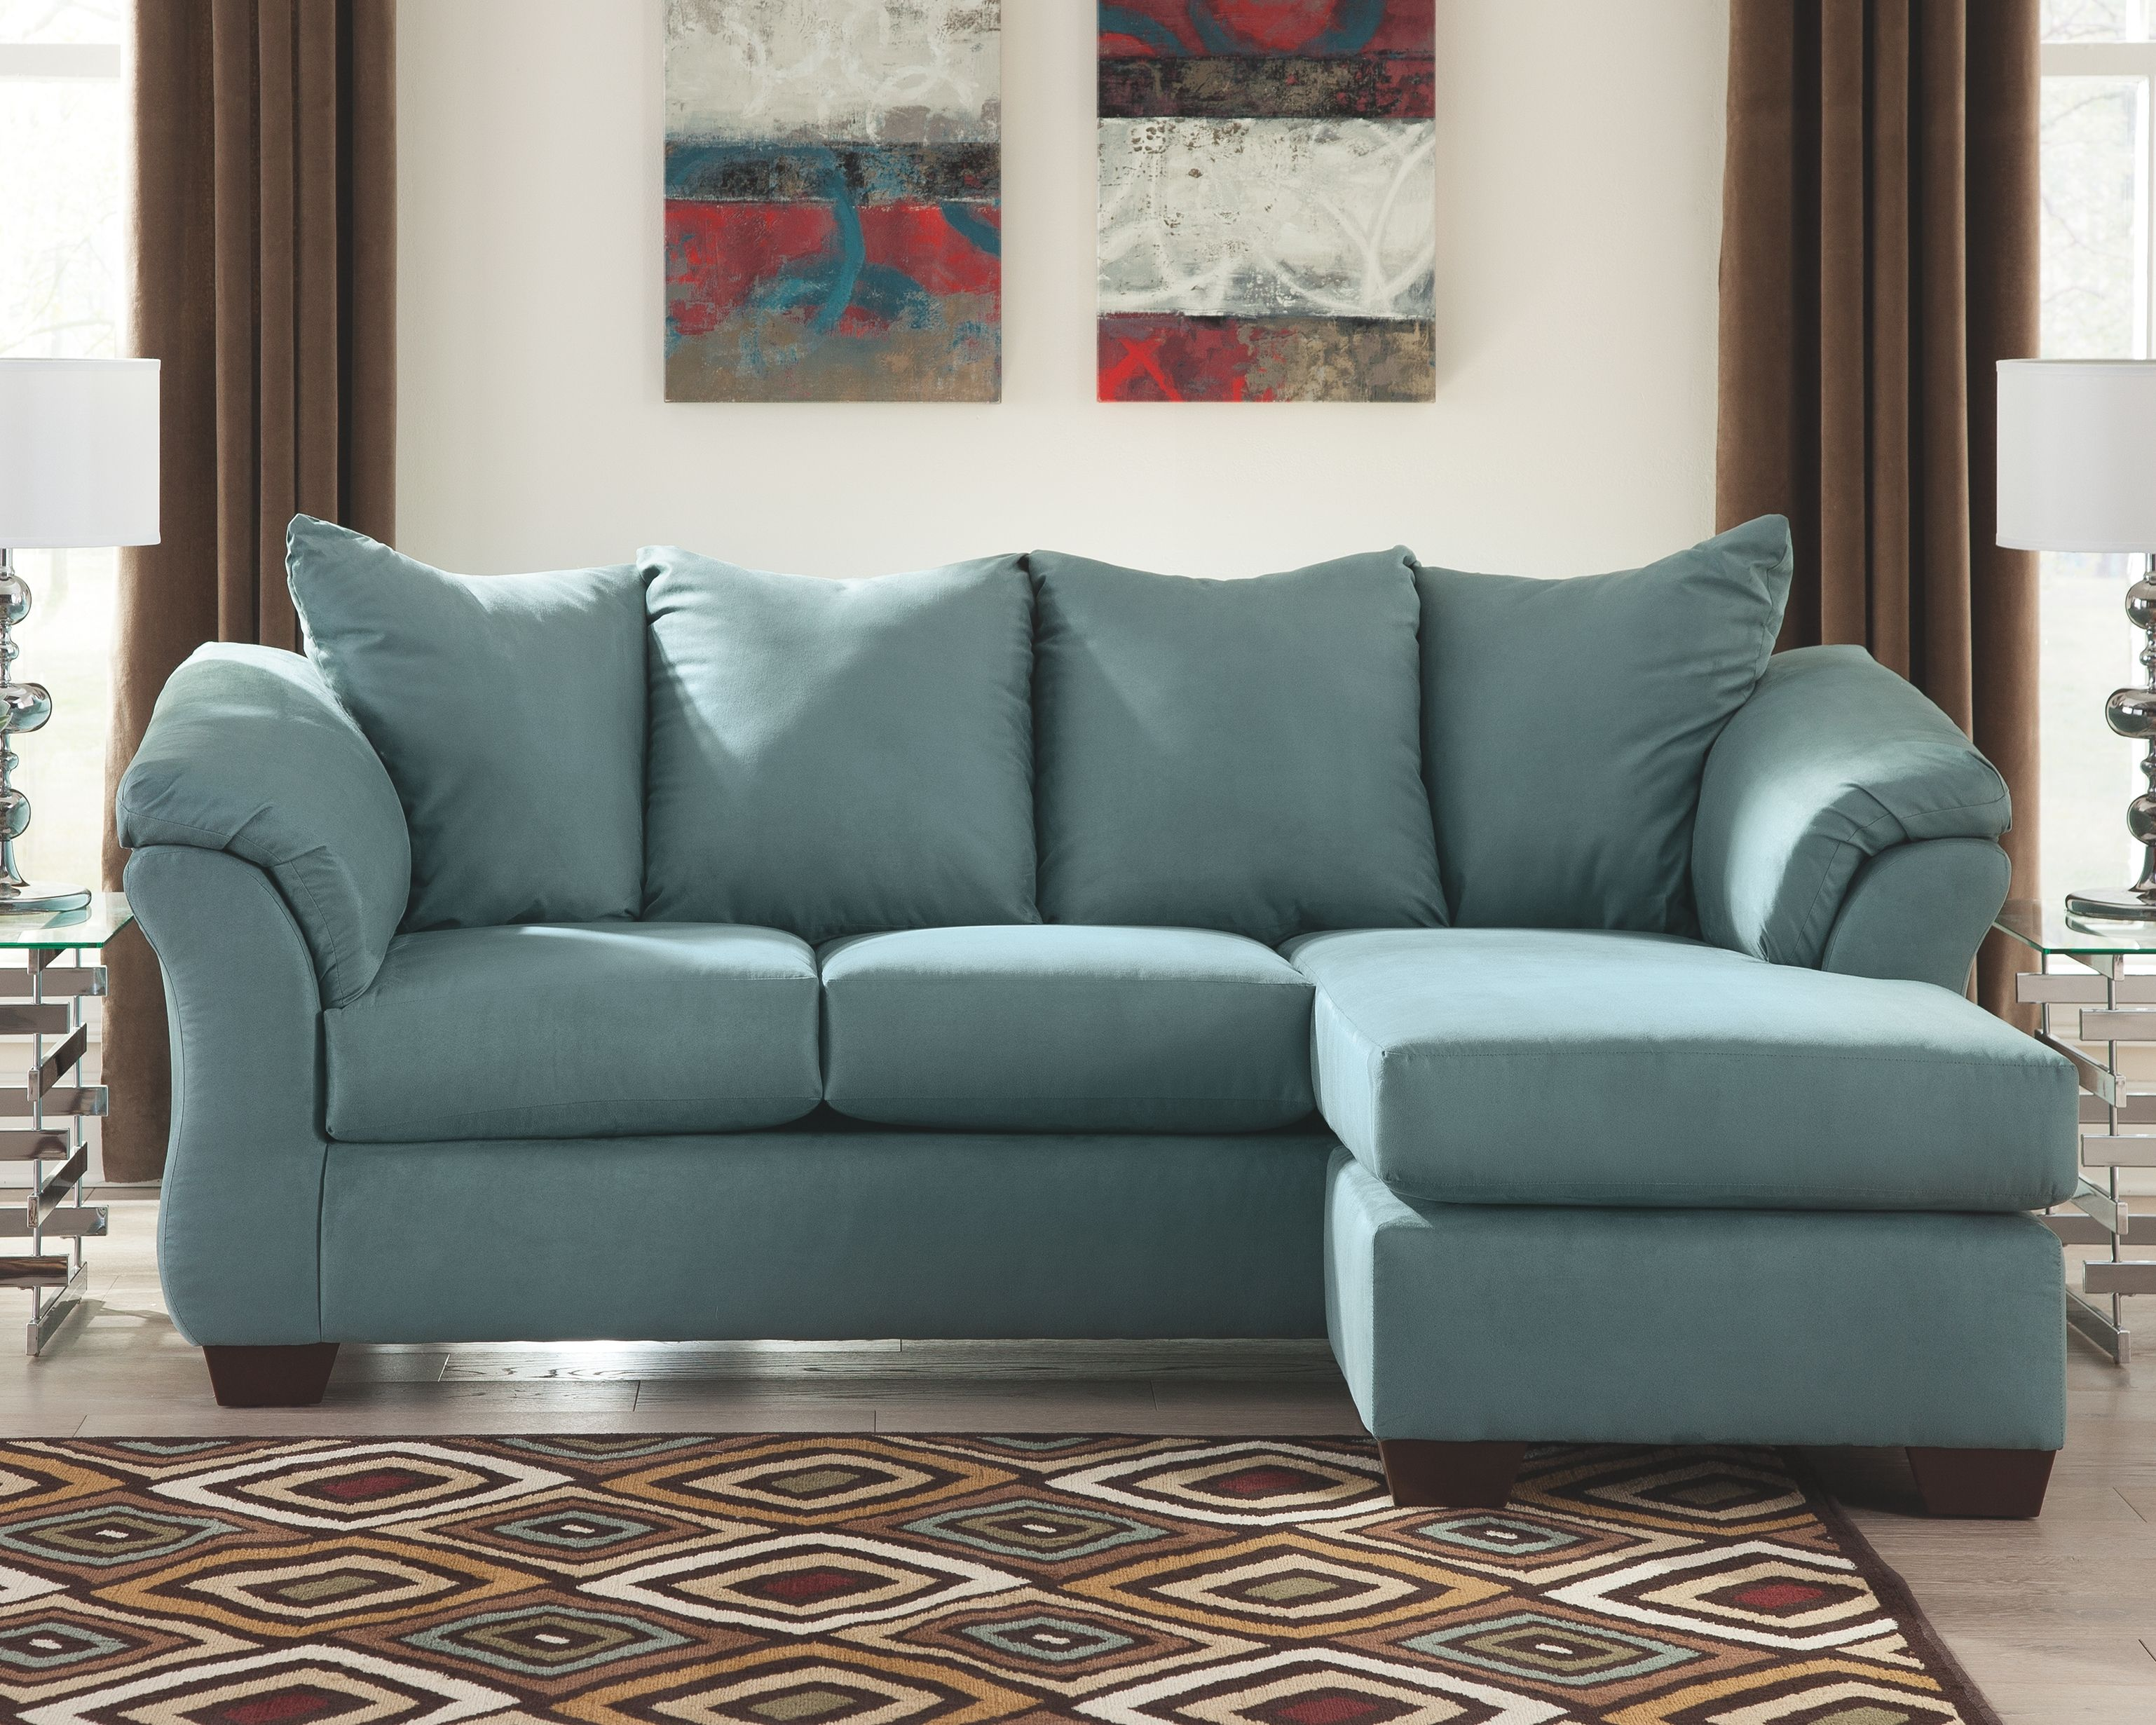 Darcy Sofa Chaise In 2019 Products Chaise Sofa Sofa Couch